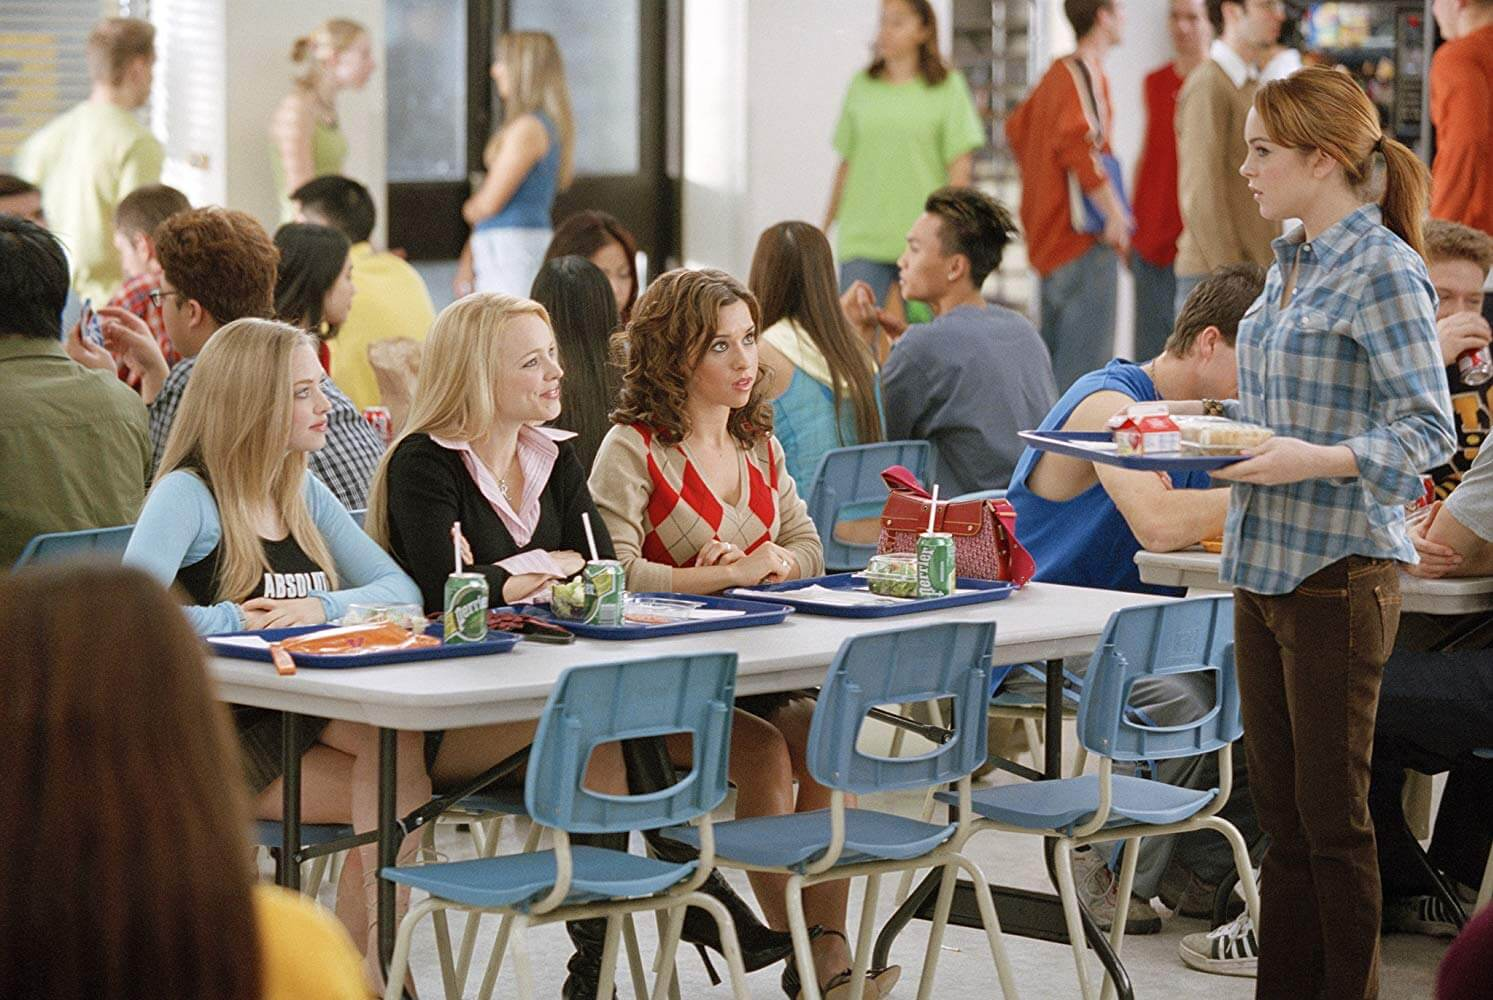 Mean Girls in the Cafeteria